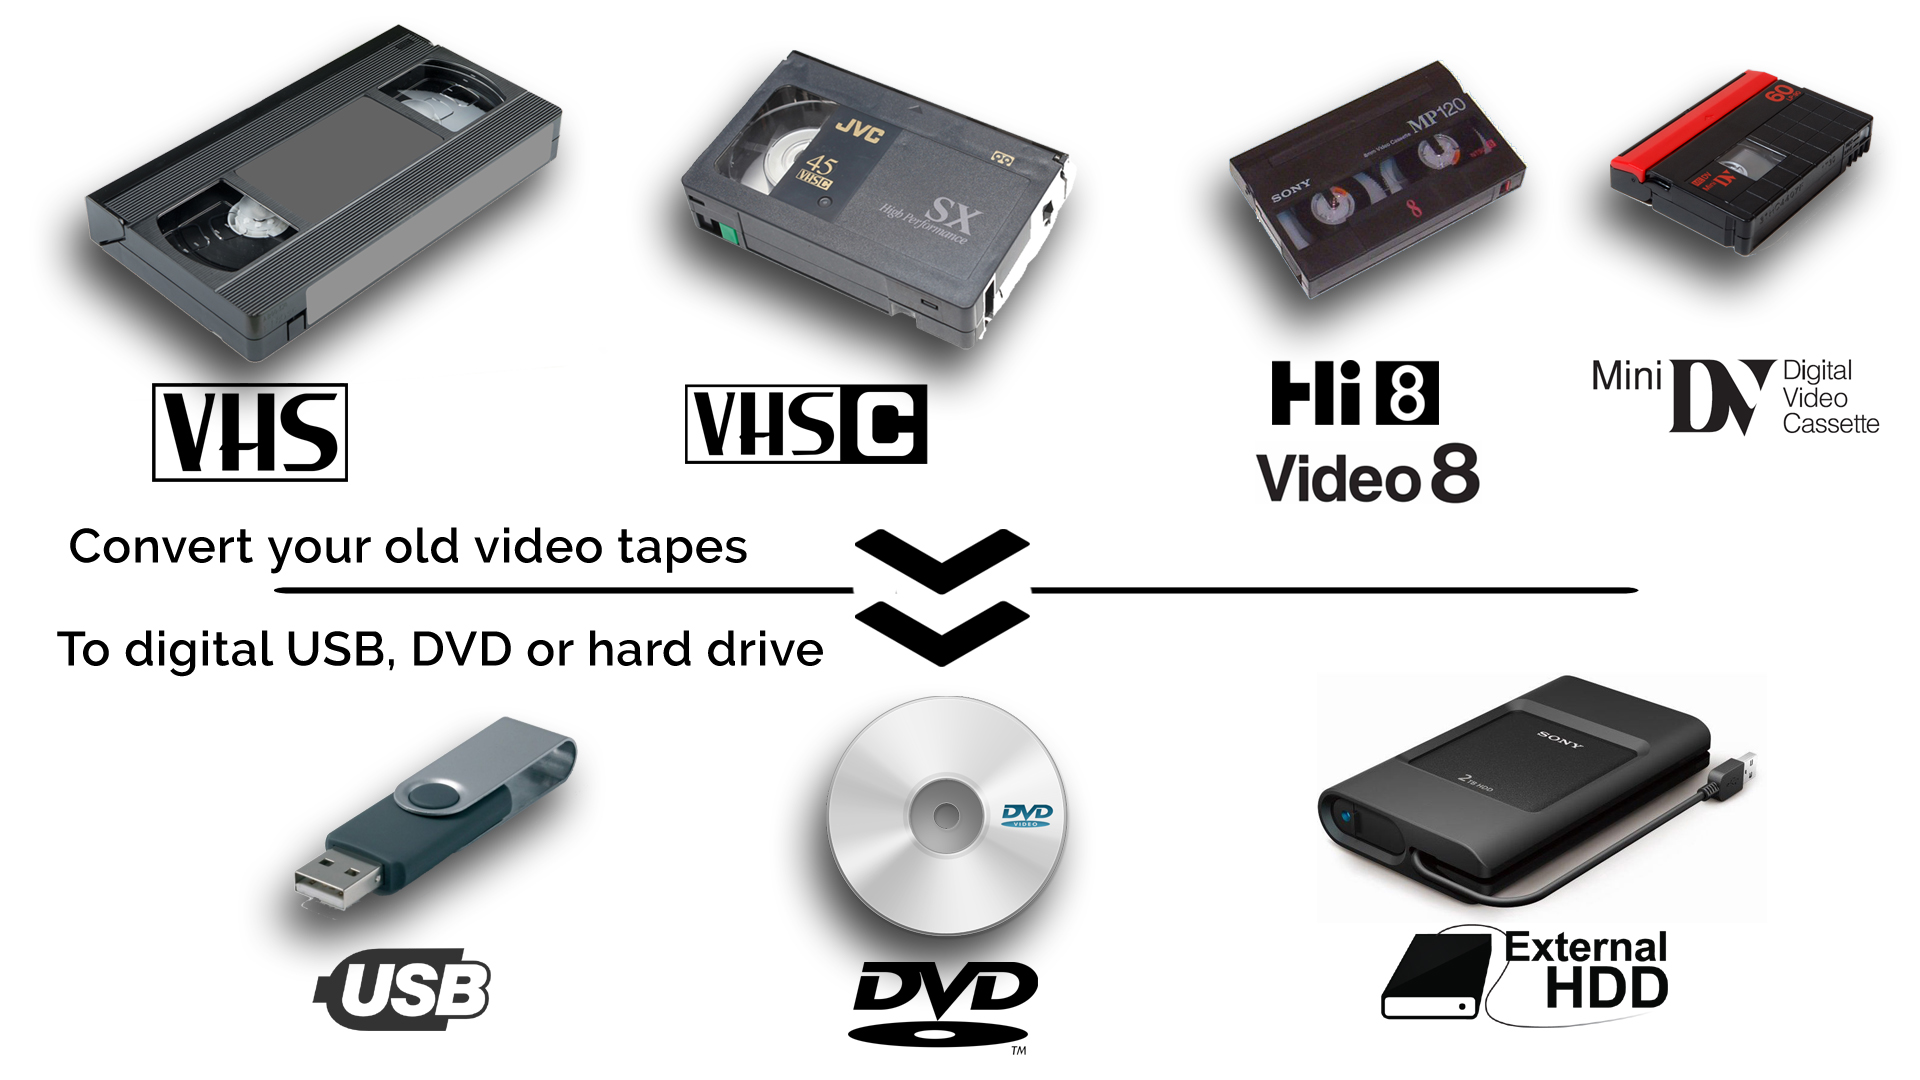 Vhs To Dvd Digital Conversion Video Essentials